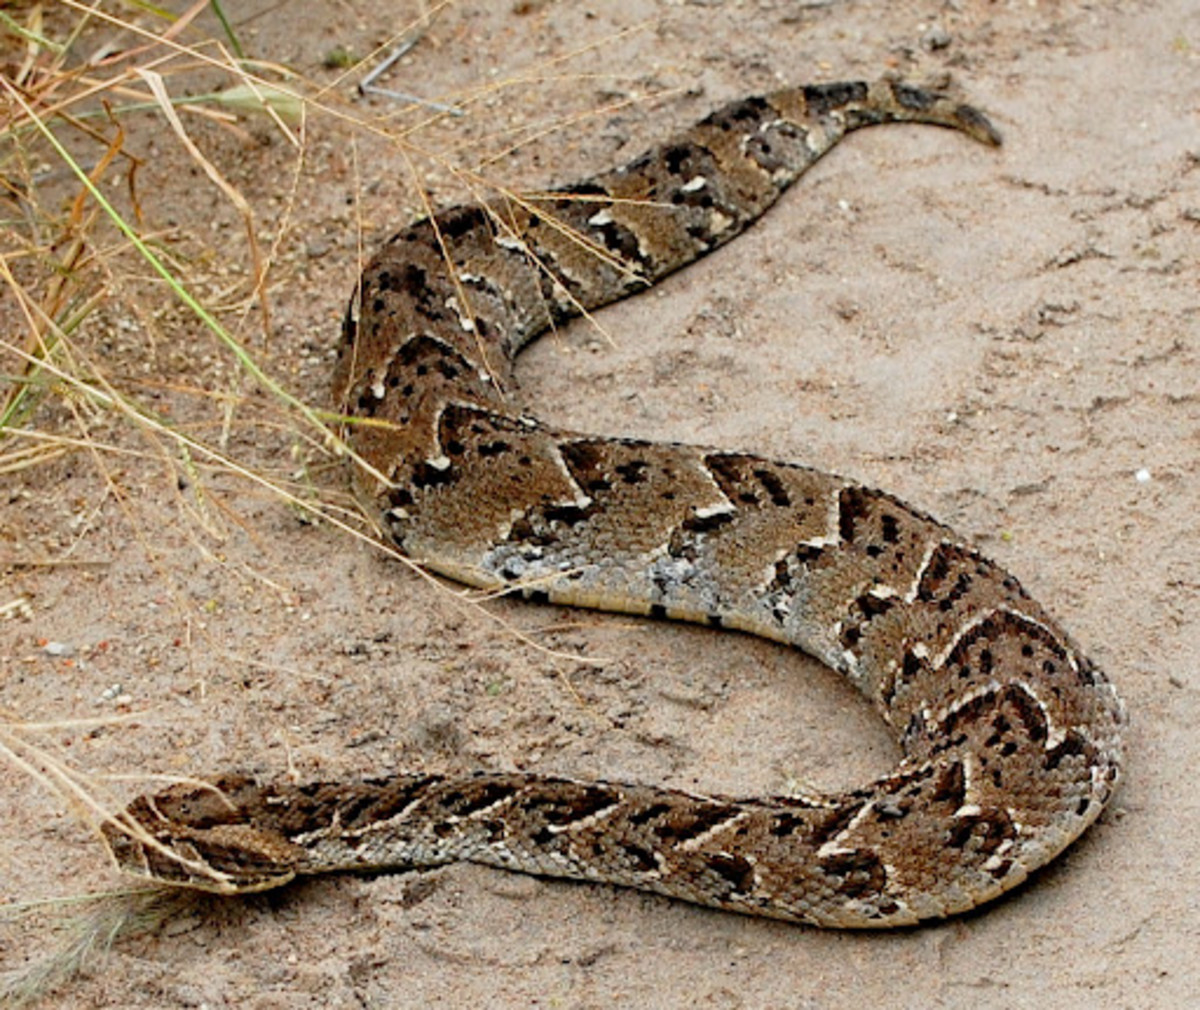 poisonous-venomous-snakes-and-spiders-in-kenya-encountered-whilst-on-holiday-or-vacation